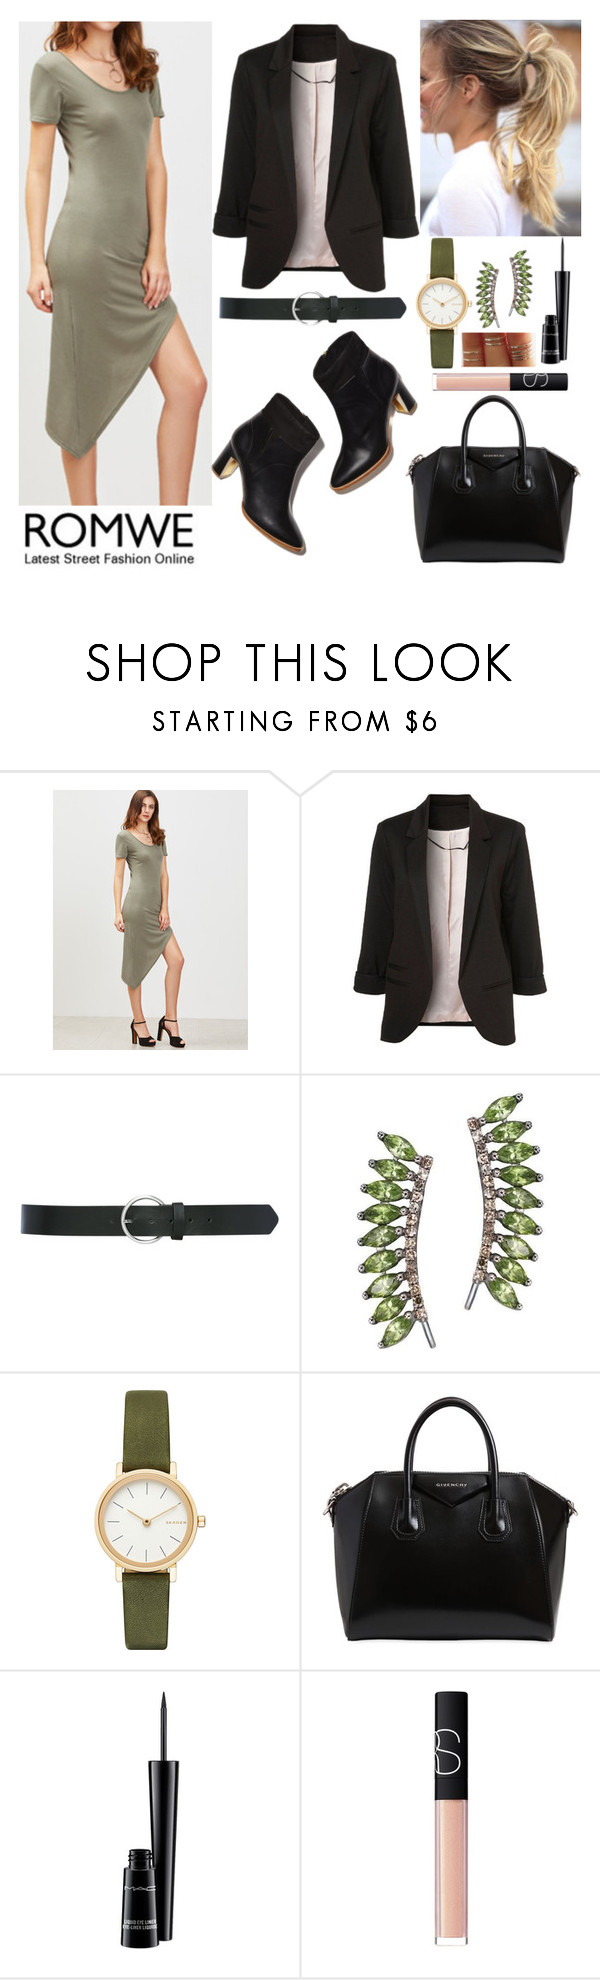 """""""00280."""" by annacastrolima ❤ liked on Polyvore featuring M&Co, Sidney Chung, Skagen, Givenchy, MAC Cosmetics, NARS Cosmetics, chic and romwe"""